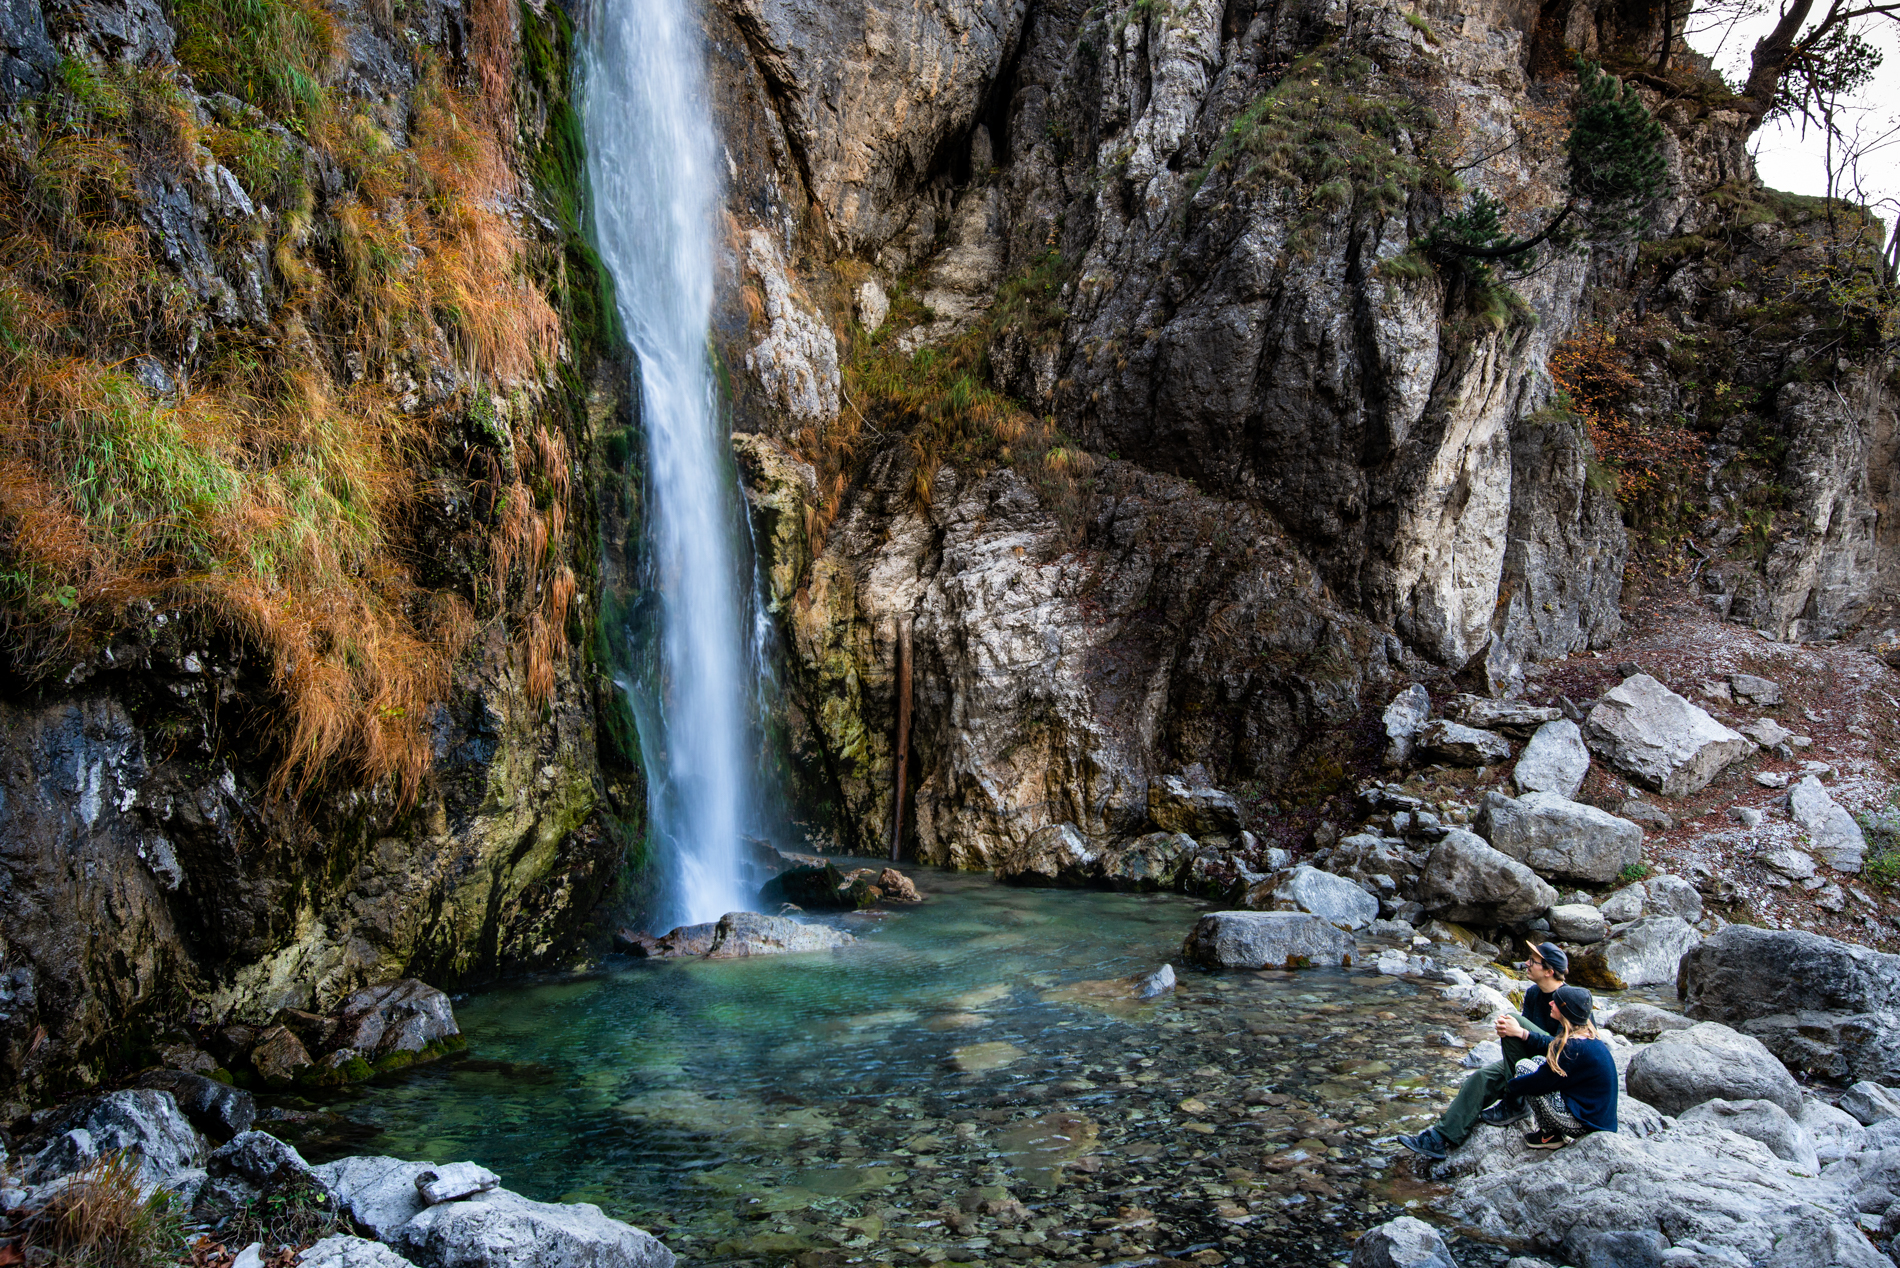 Ellisandme in front of a waterfall in Theth, Albania.